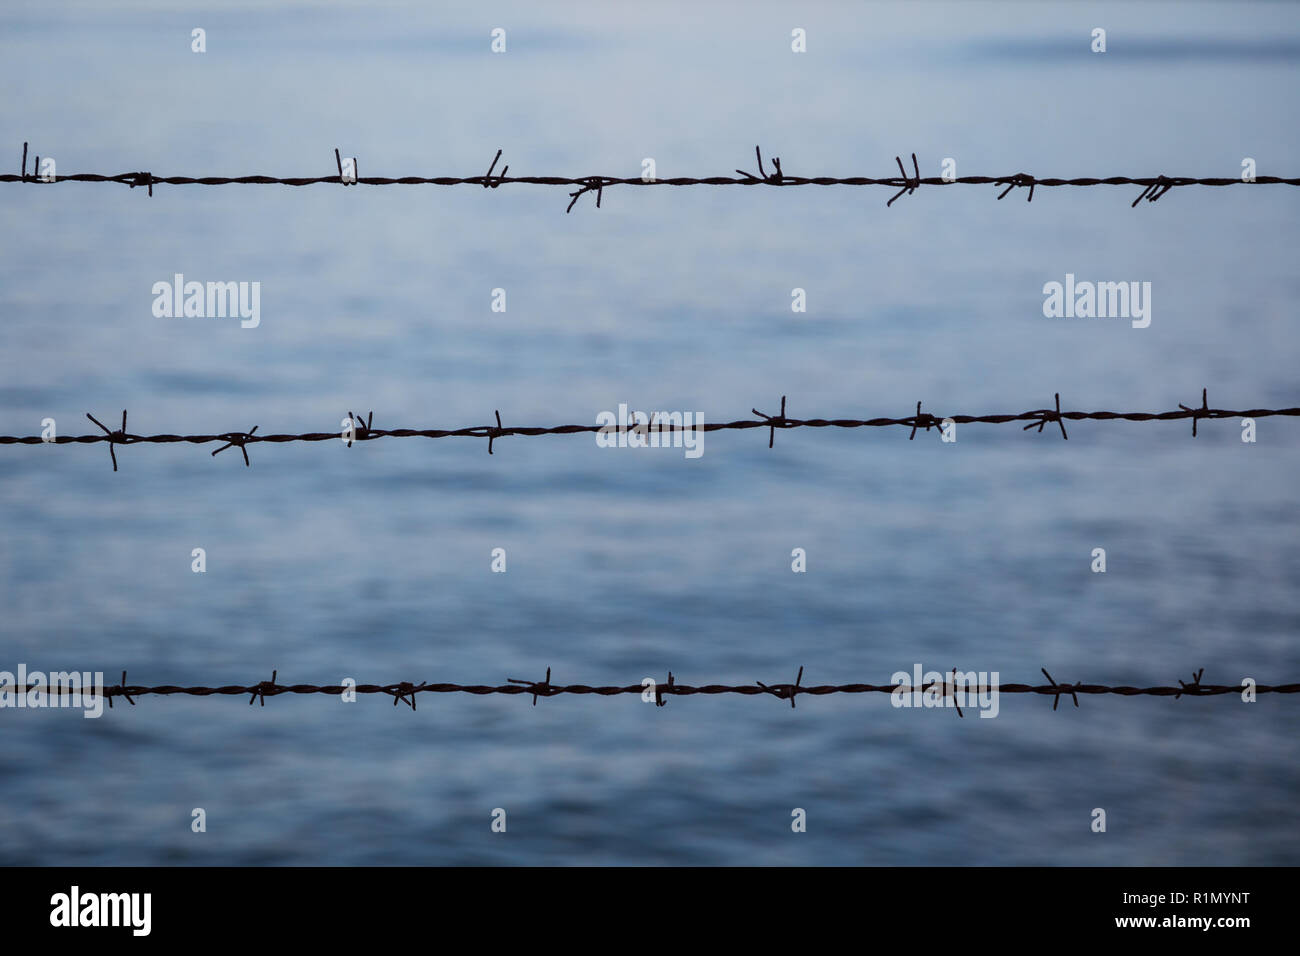 Silhouette of barbed wire fence against blurry blue water in the evening. Focused on the foreground. - Stock Image